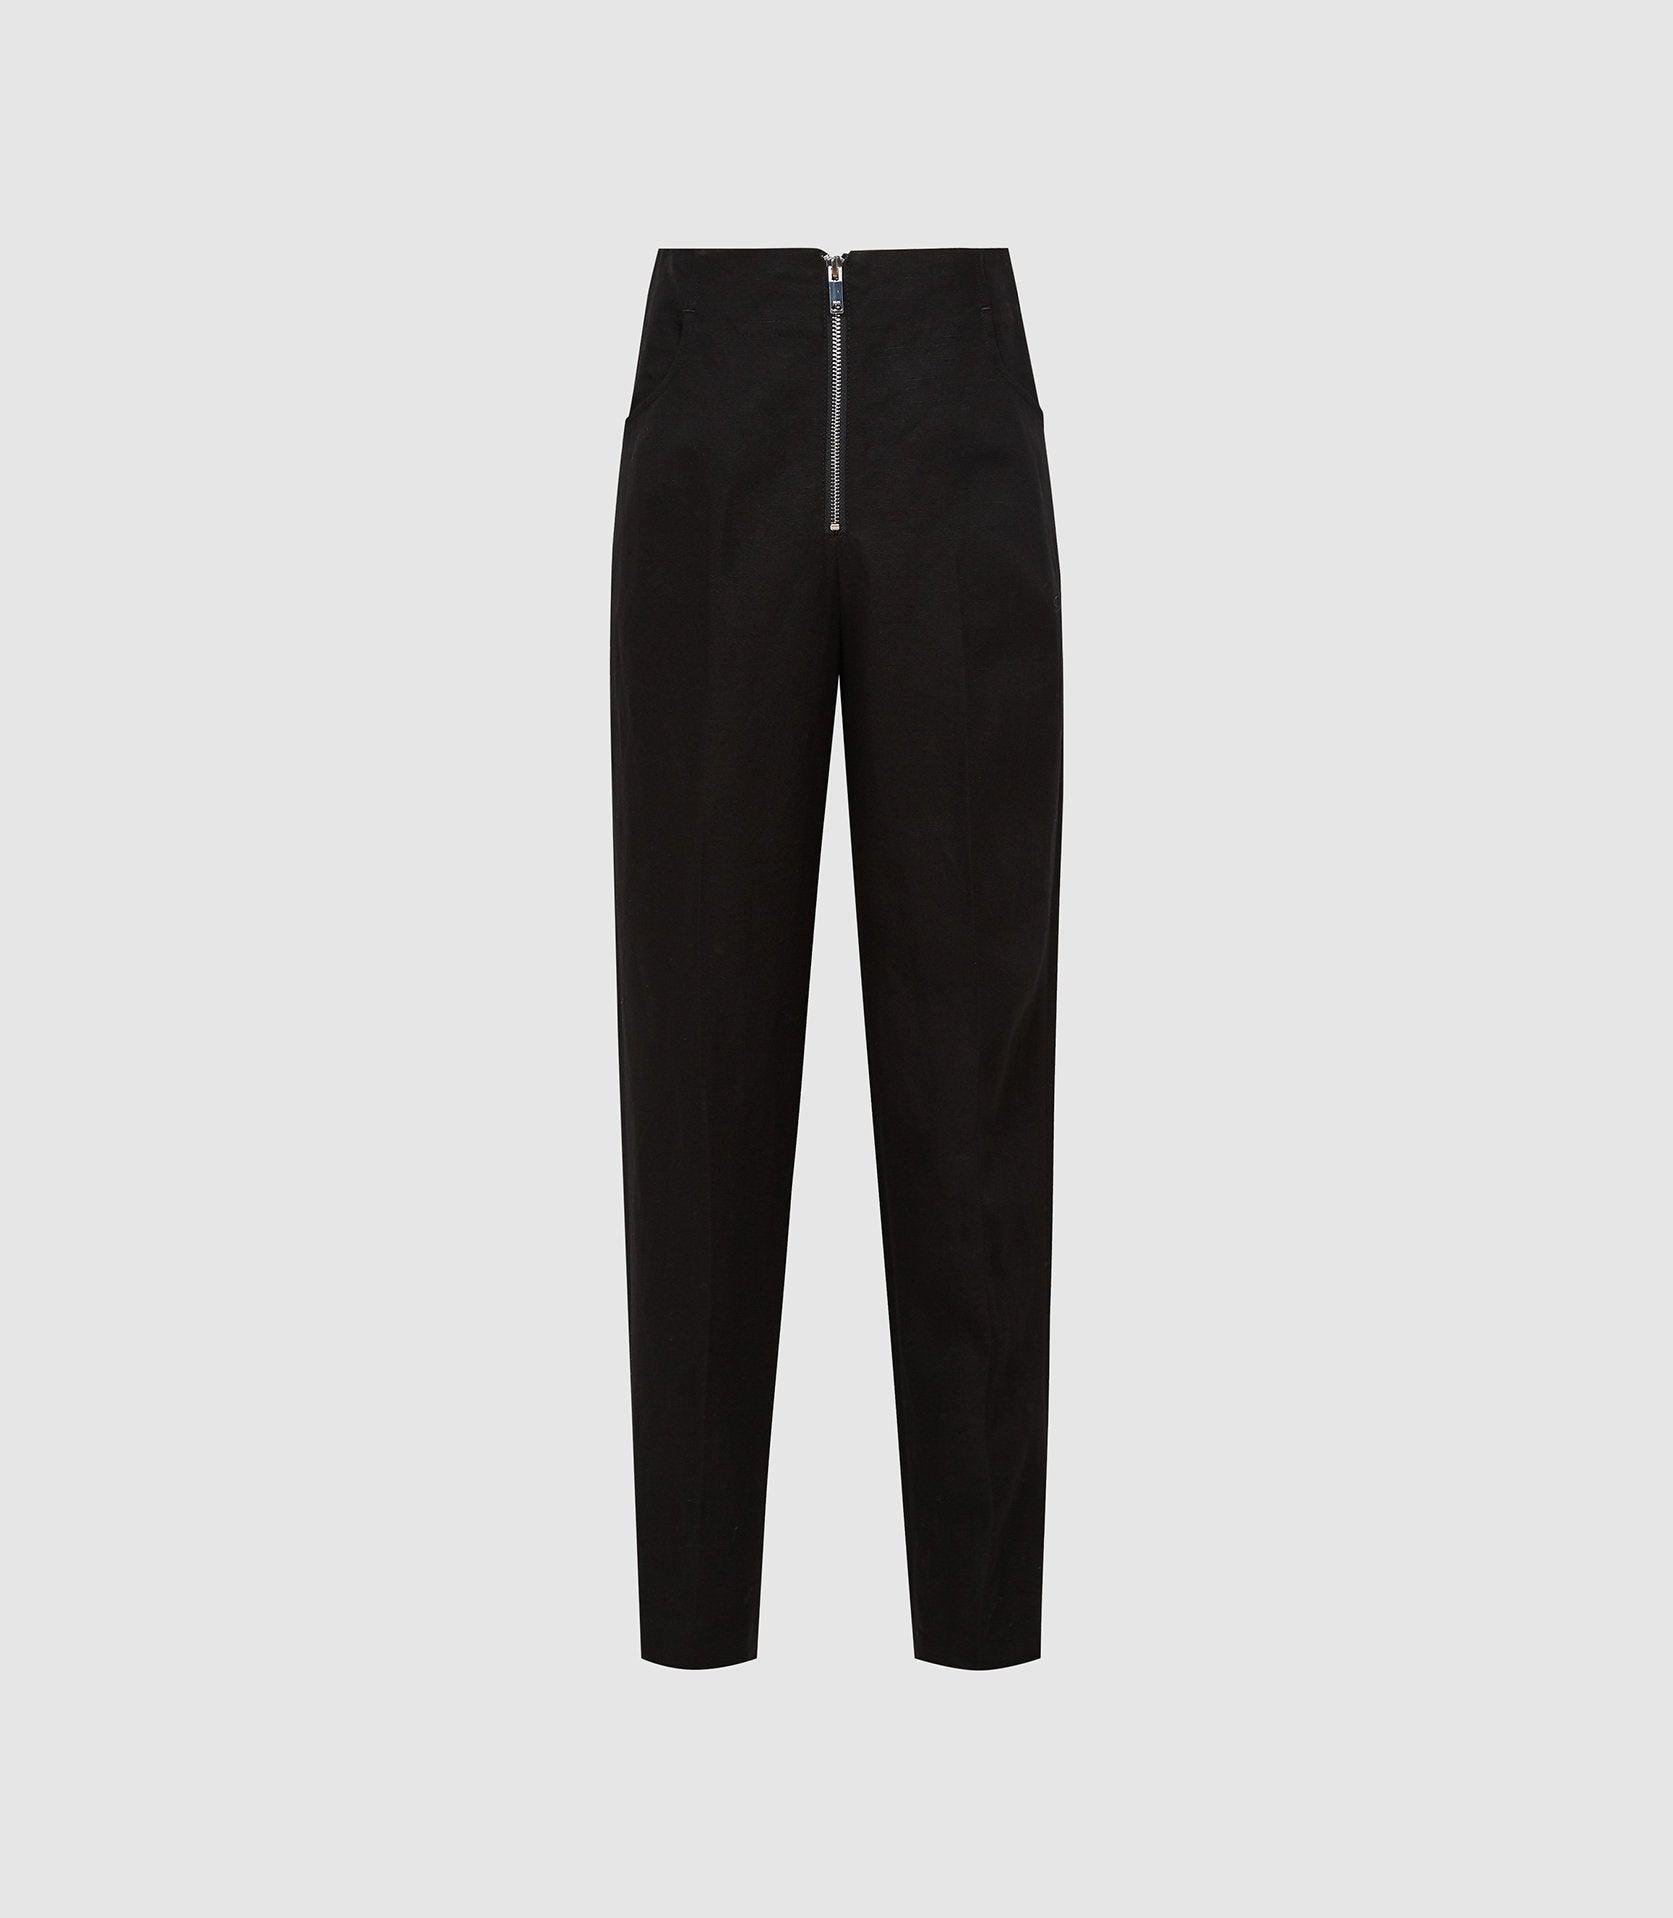 CALLY - LINEN BLEND TROUSERS WITH EXPOSED ZIP 4